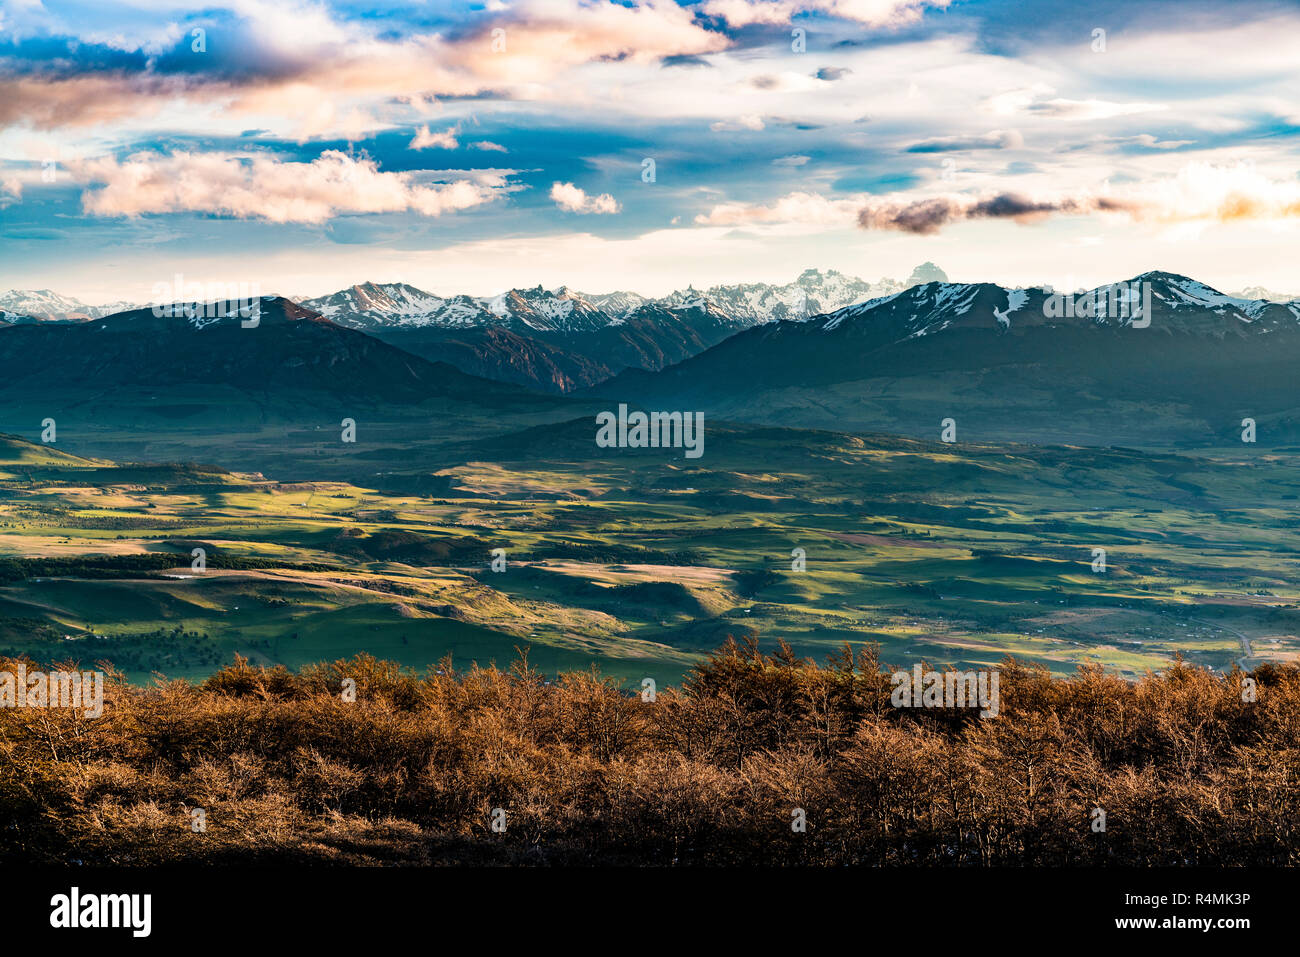 Sunset over Simpson Valley or Valle Simpson in the Aysen Region of Patagonia in Chile. - Stock Image